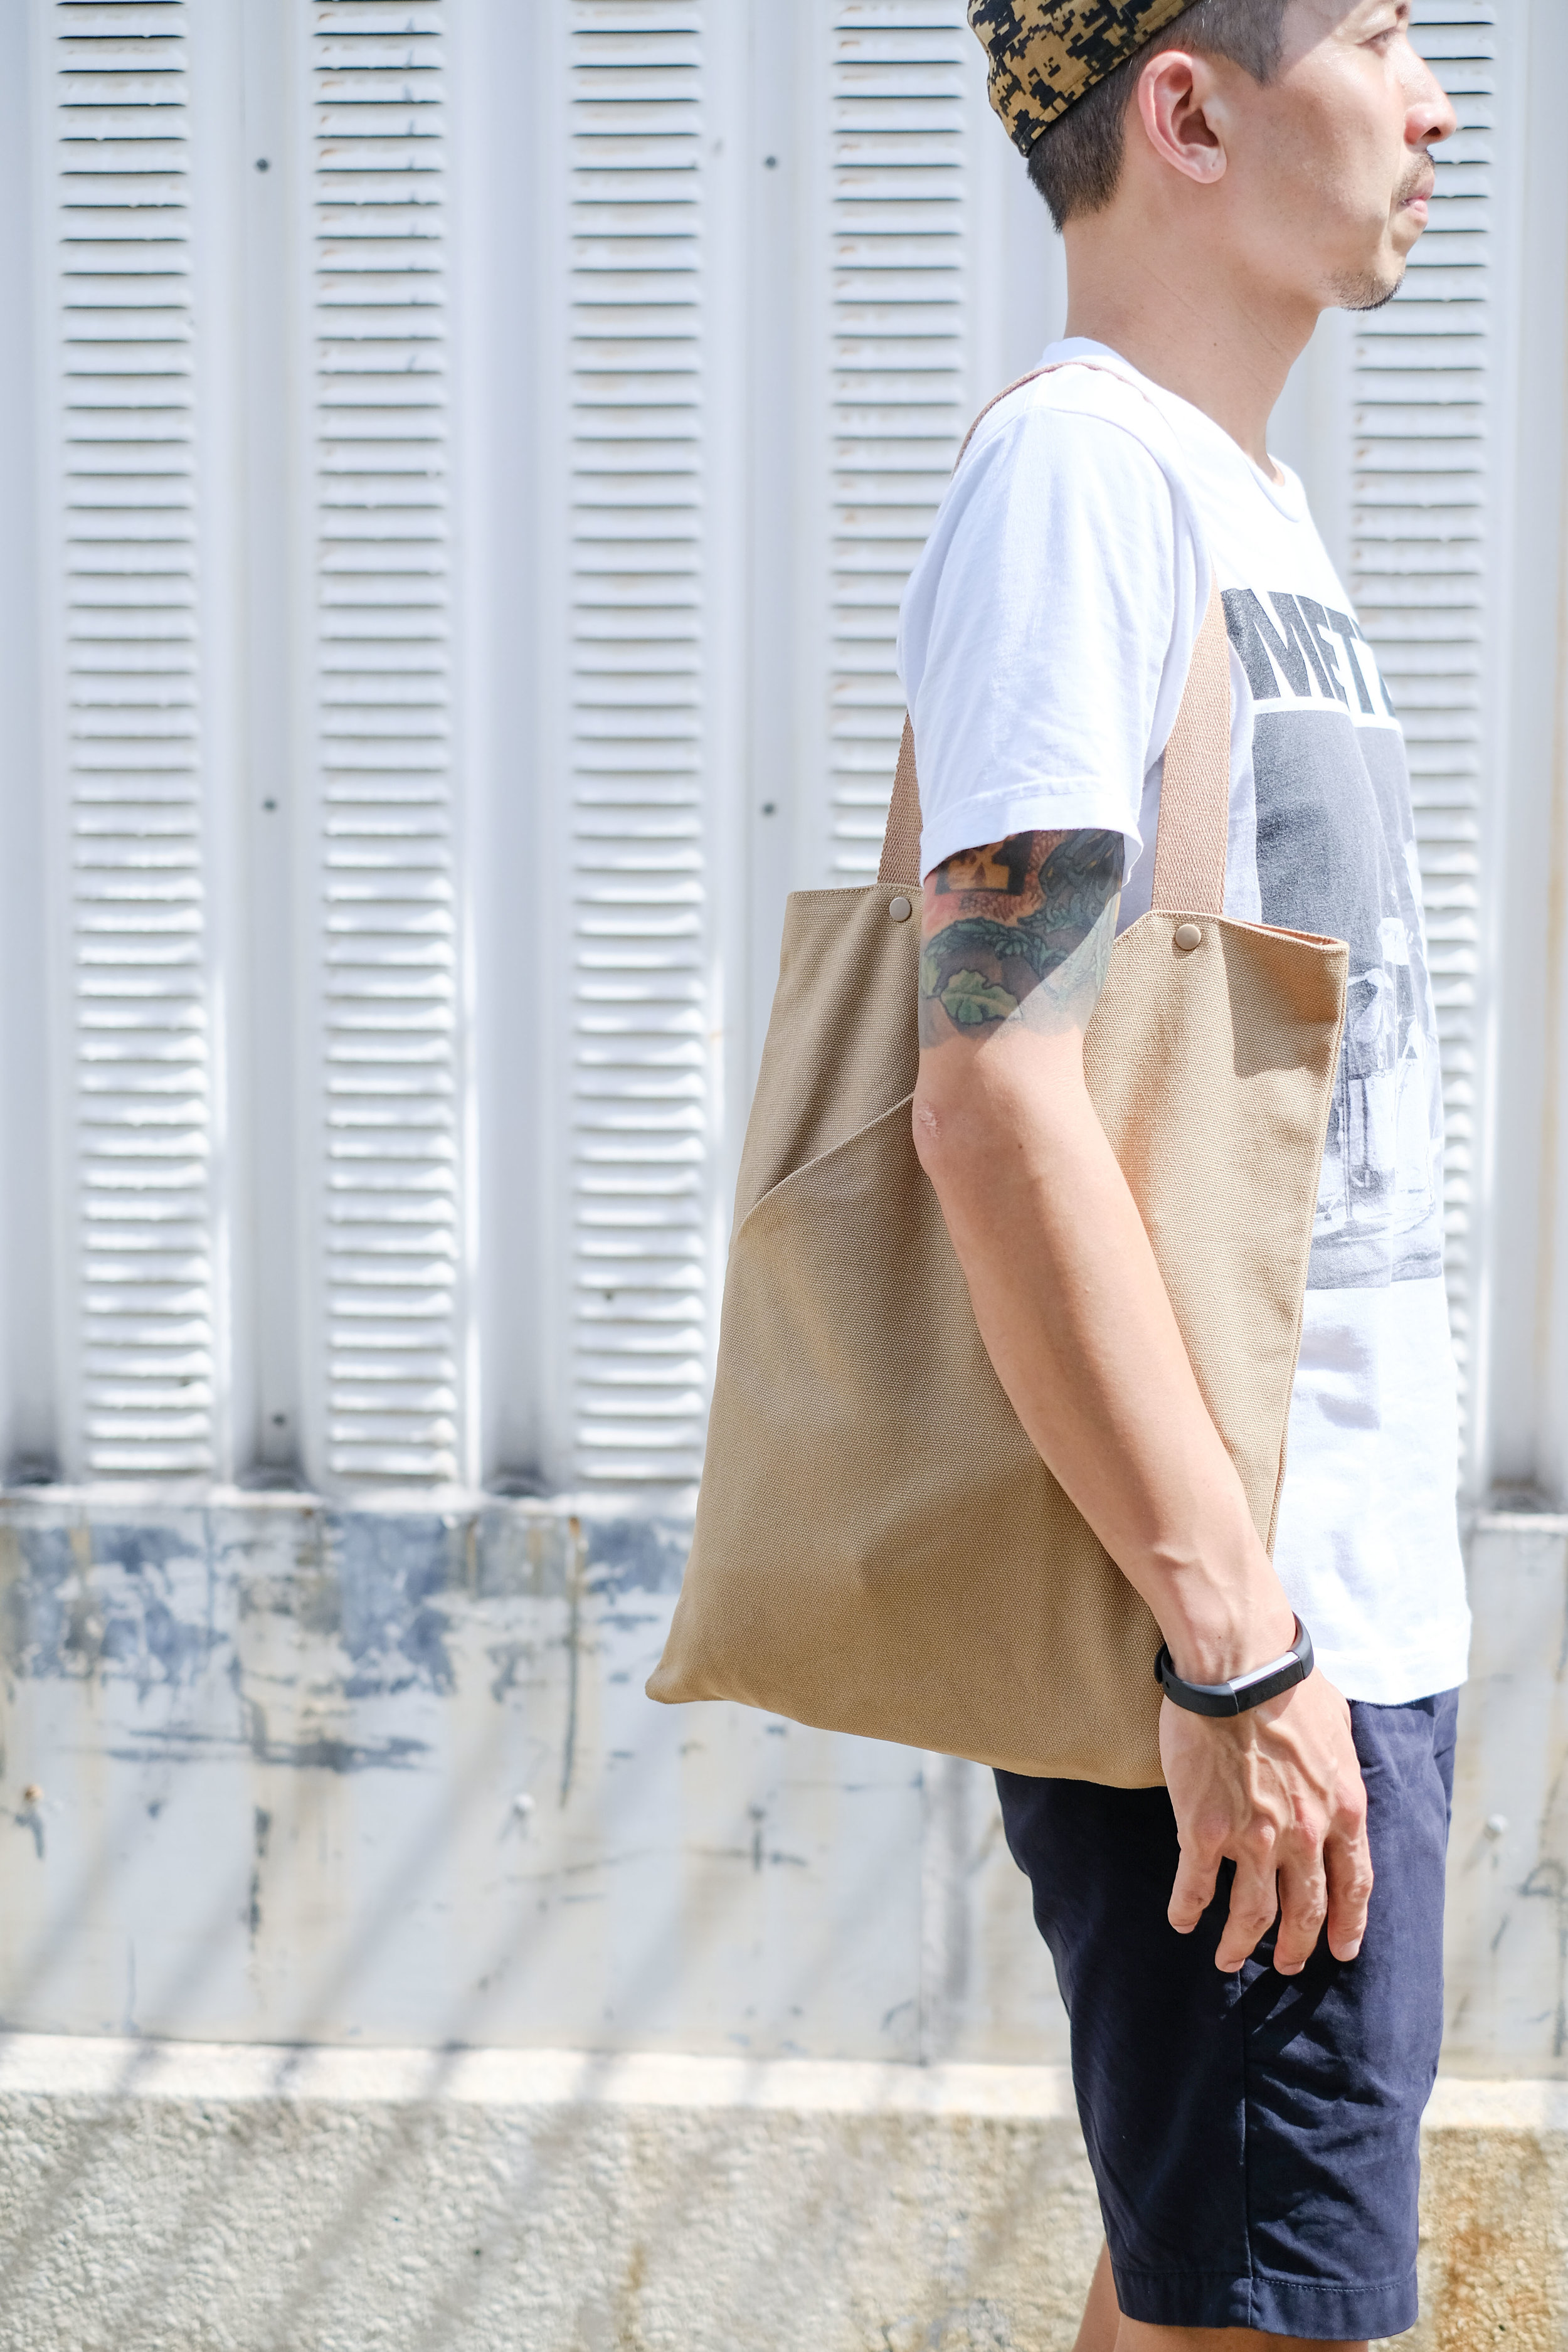 Ben wears NOTCH Tote Bag in Haystack, available  here